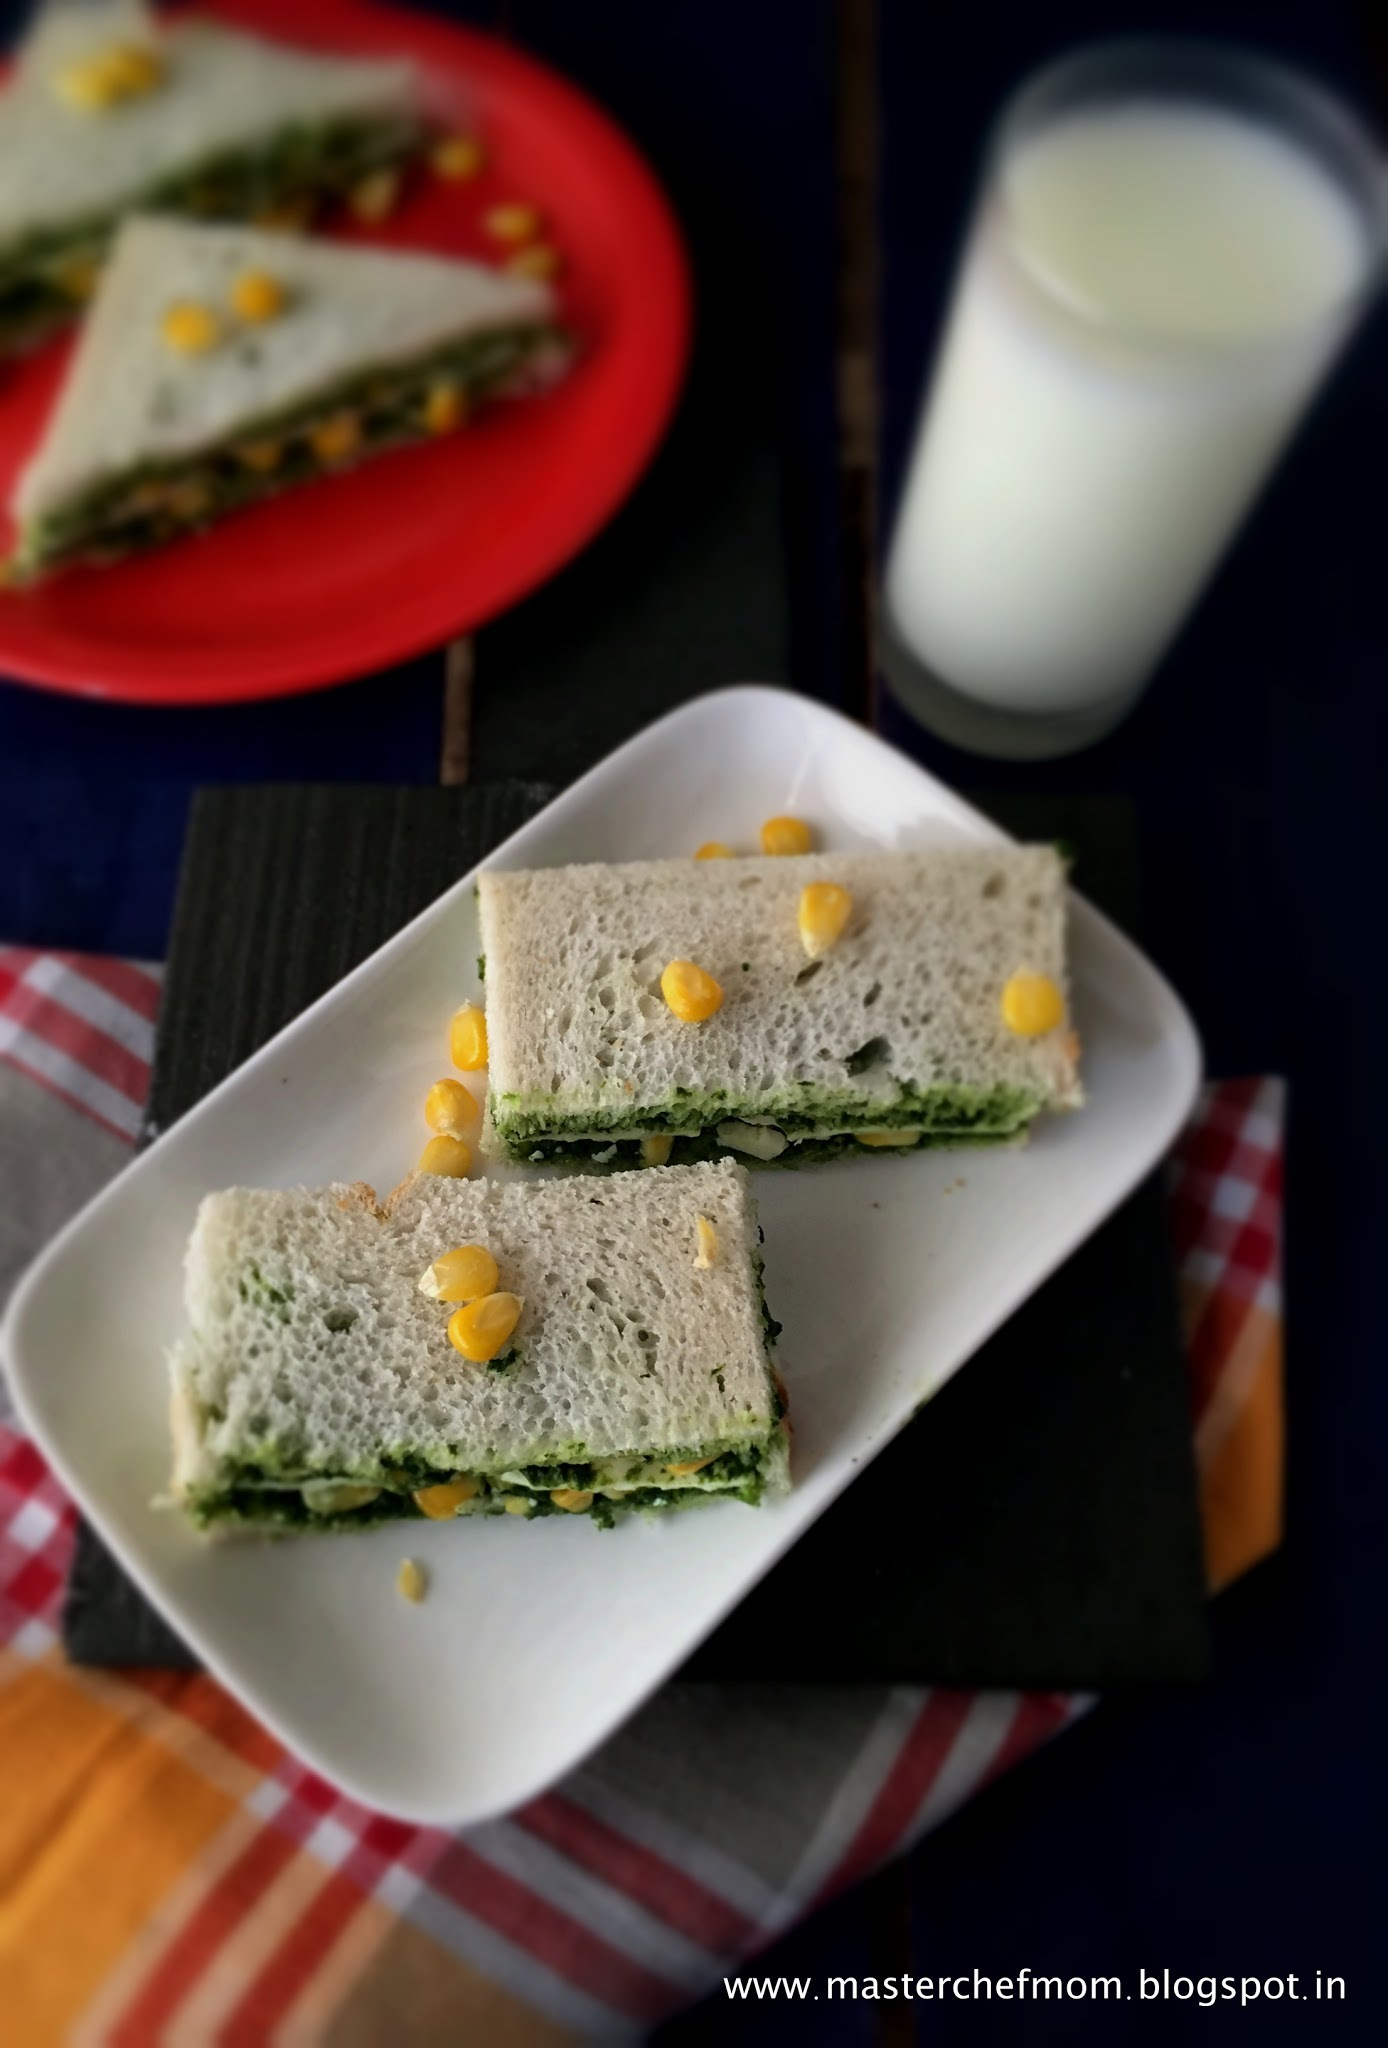 Spinach Corn Cheese Sandwich | How to make Spinach Corn Cheese Sandwich at Home |  With Detailed Stepwise Pictures | Quick and Healthy Lunch Box Recipe